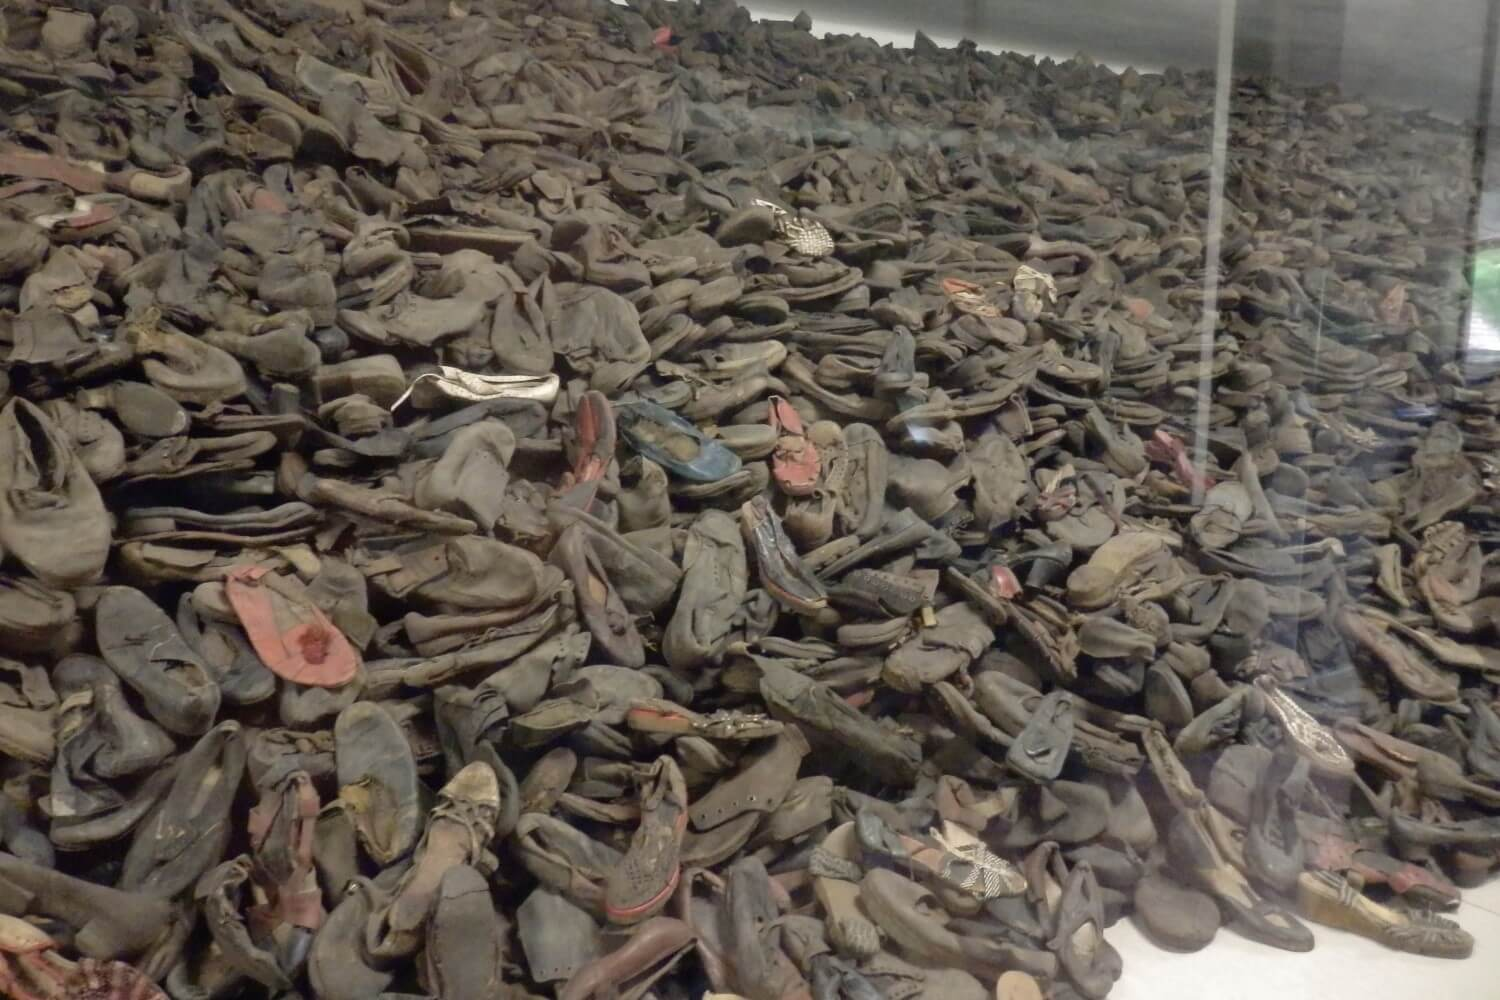 Evidence: shoes of victims at Auschwitz I